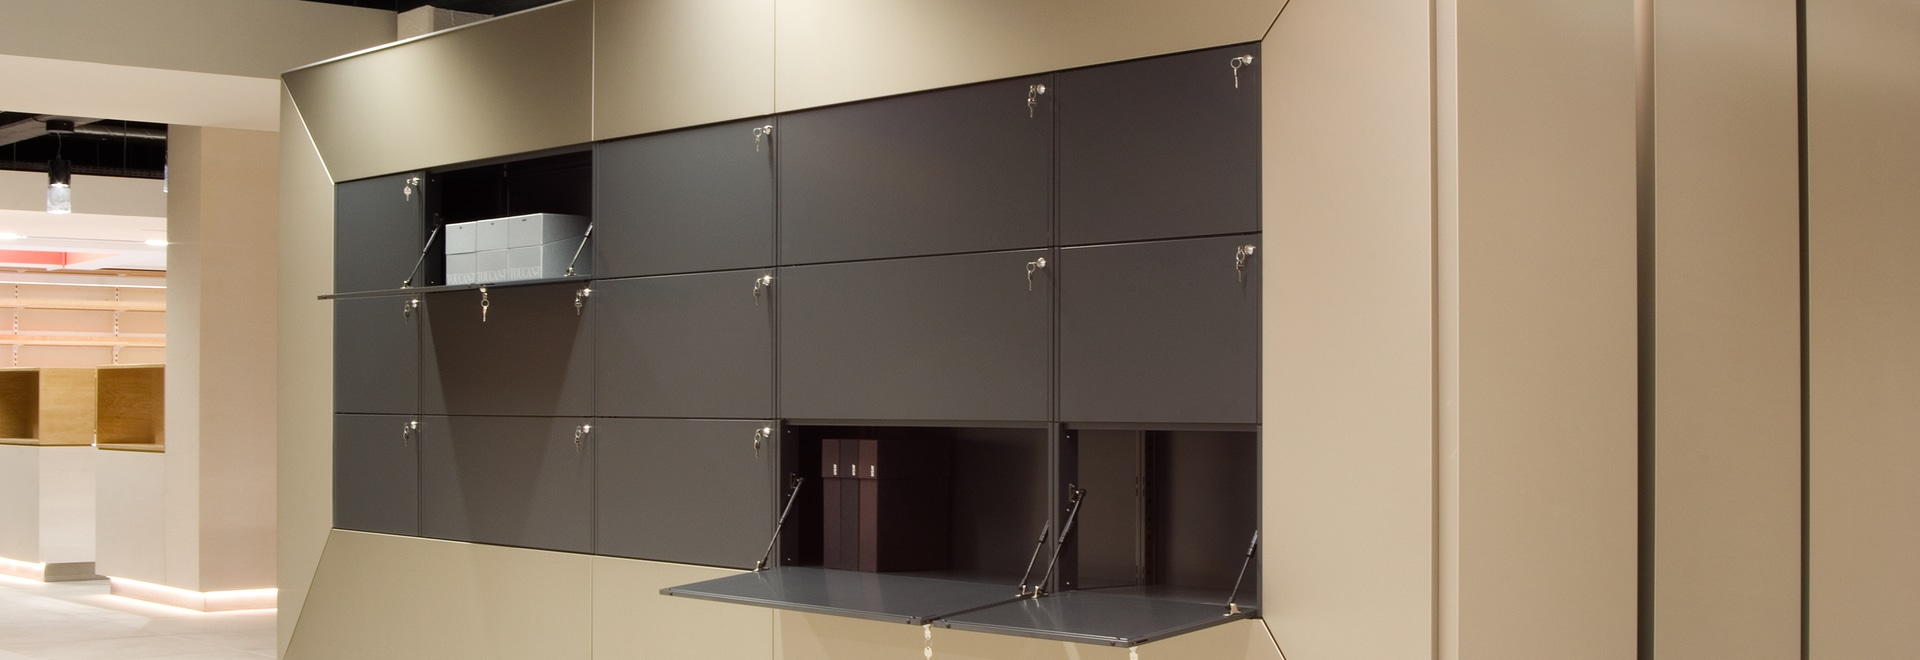 Award-winning shelving system